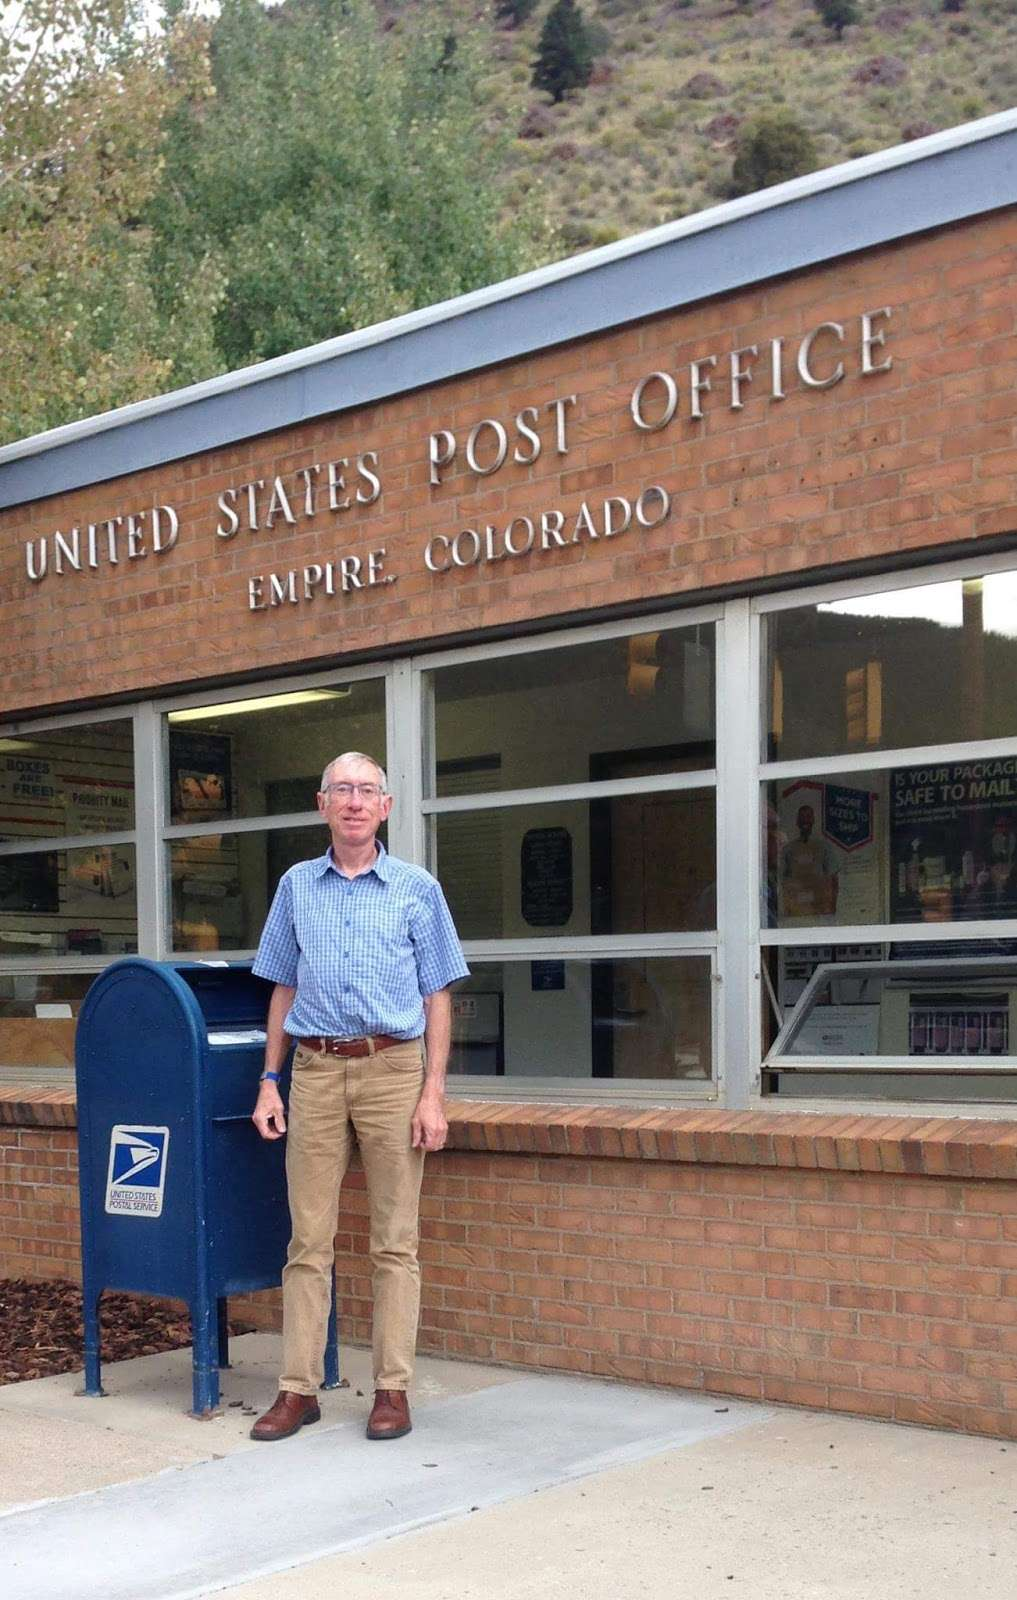 United States Postal Service - post office  | Photo 1 of 8 | Address: 215 W Park Ave, Empire, CO 80438, USA | Phone: (800) 275-8777